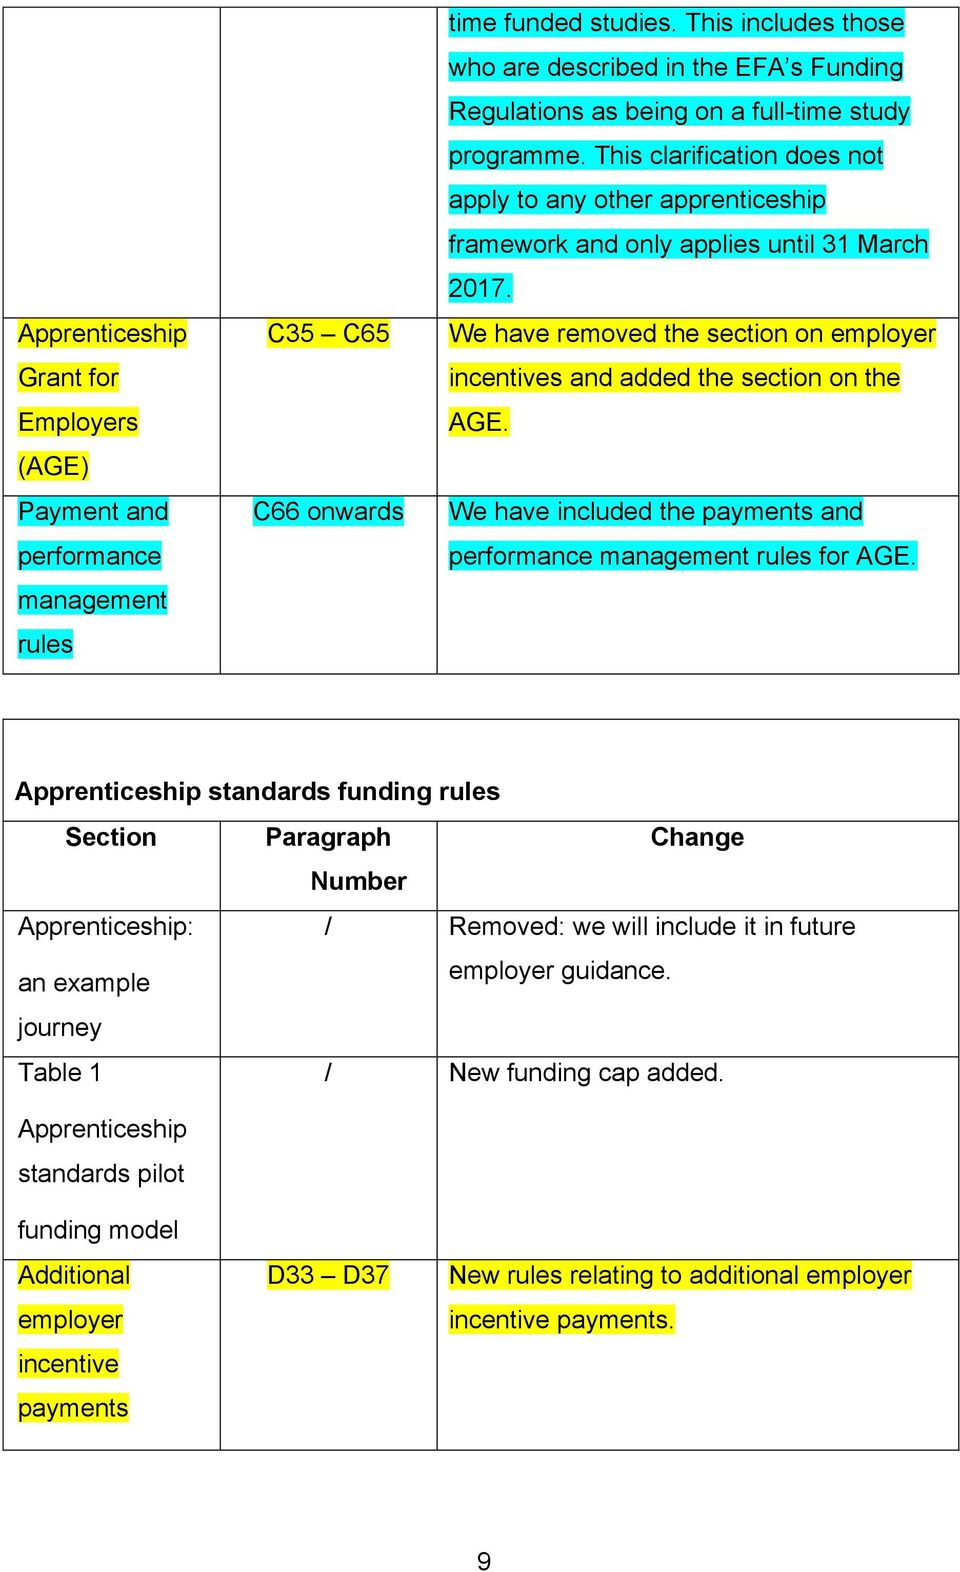 This clarification does not apply to any other apprenticeship framework and only applies until 31 March 2017. We have removed the section on employer incentives and added the section on the AGE.